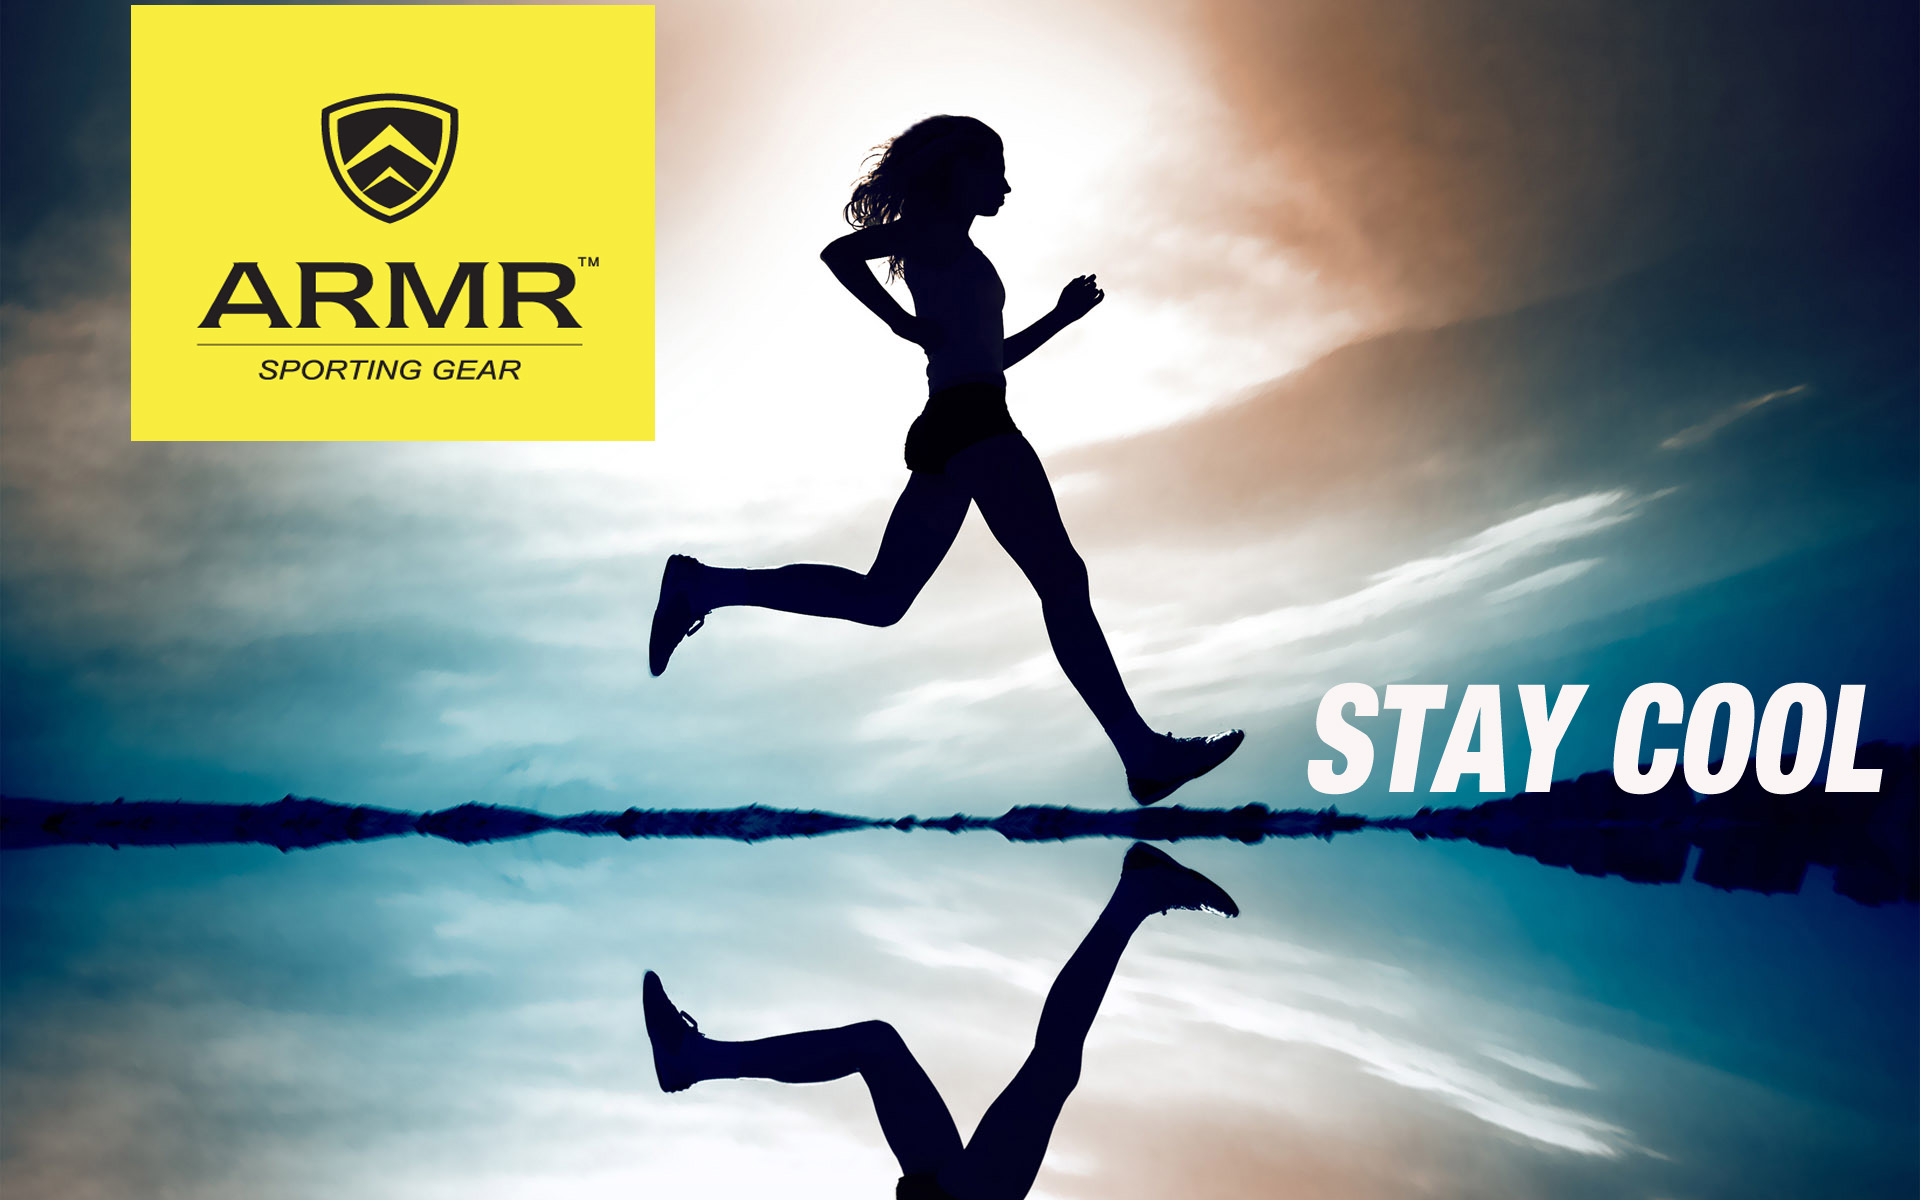 Stay Cool with ARMR